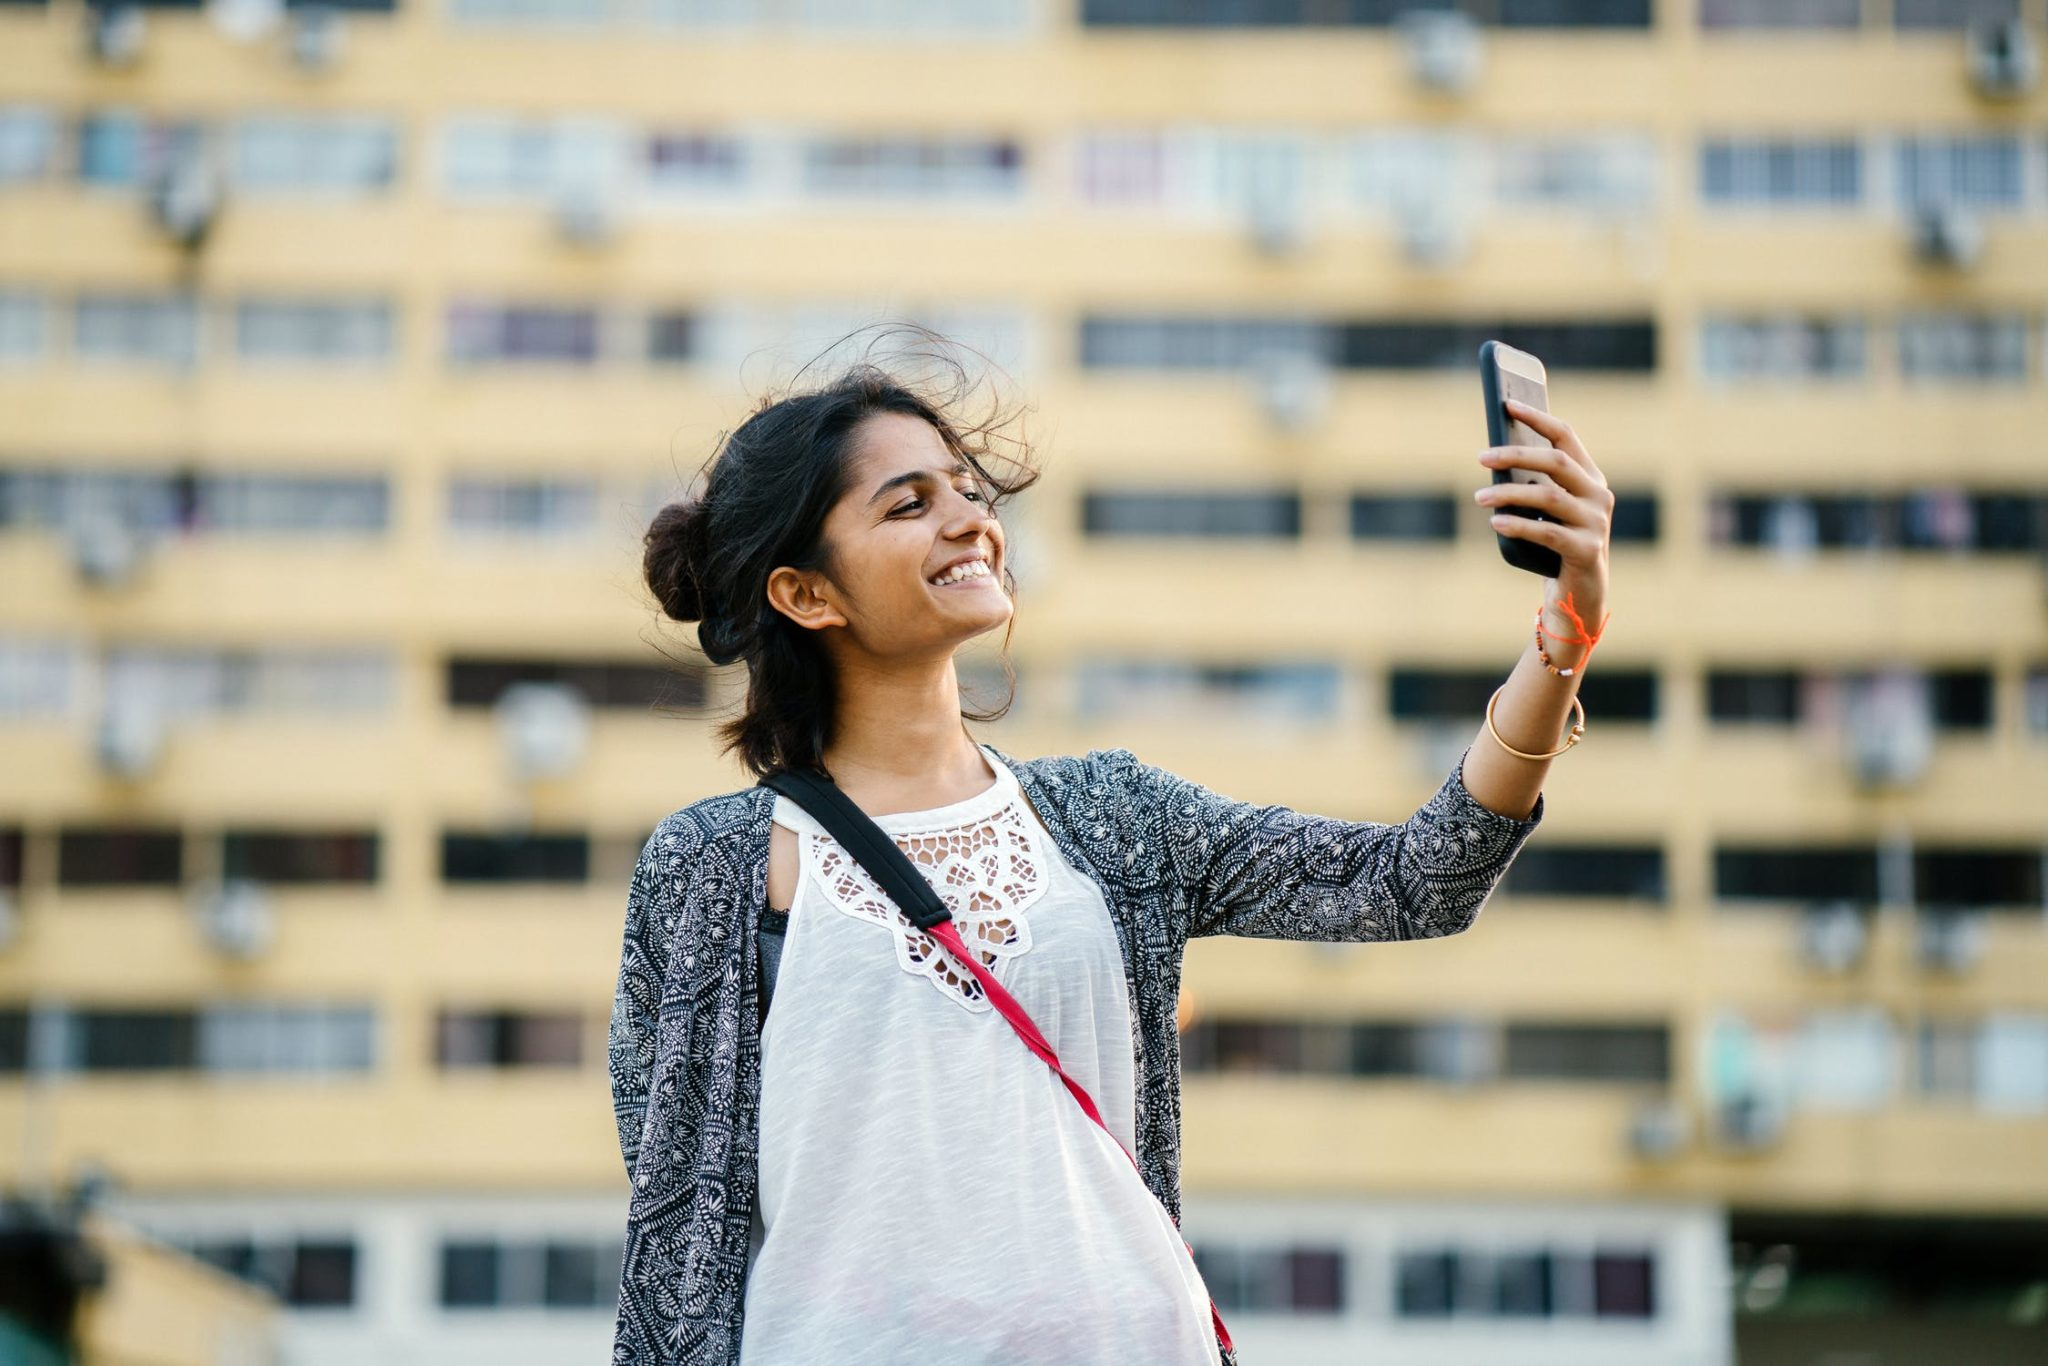 5 Tips For Taking Better Photos With Any Mobile Device